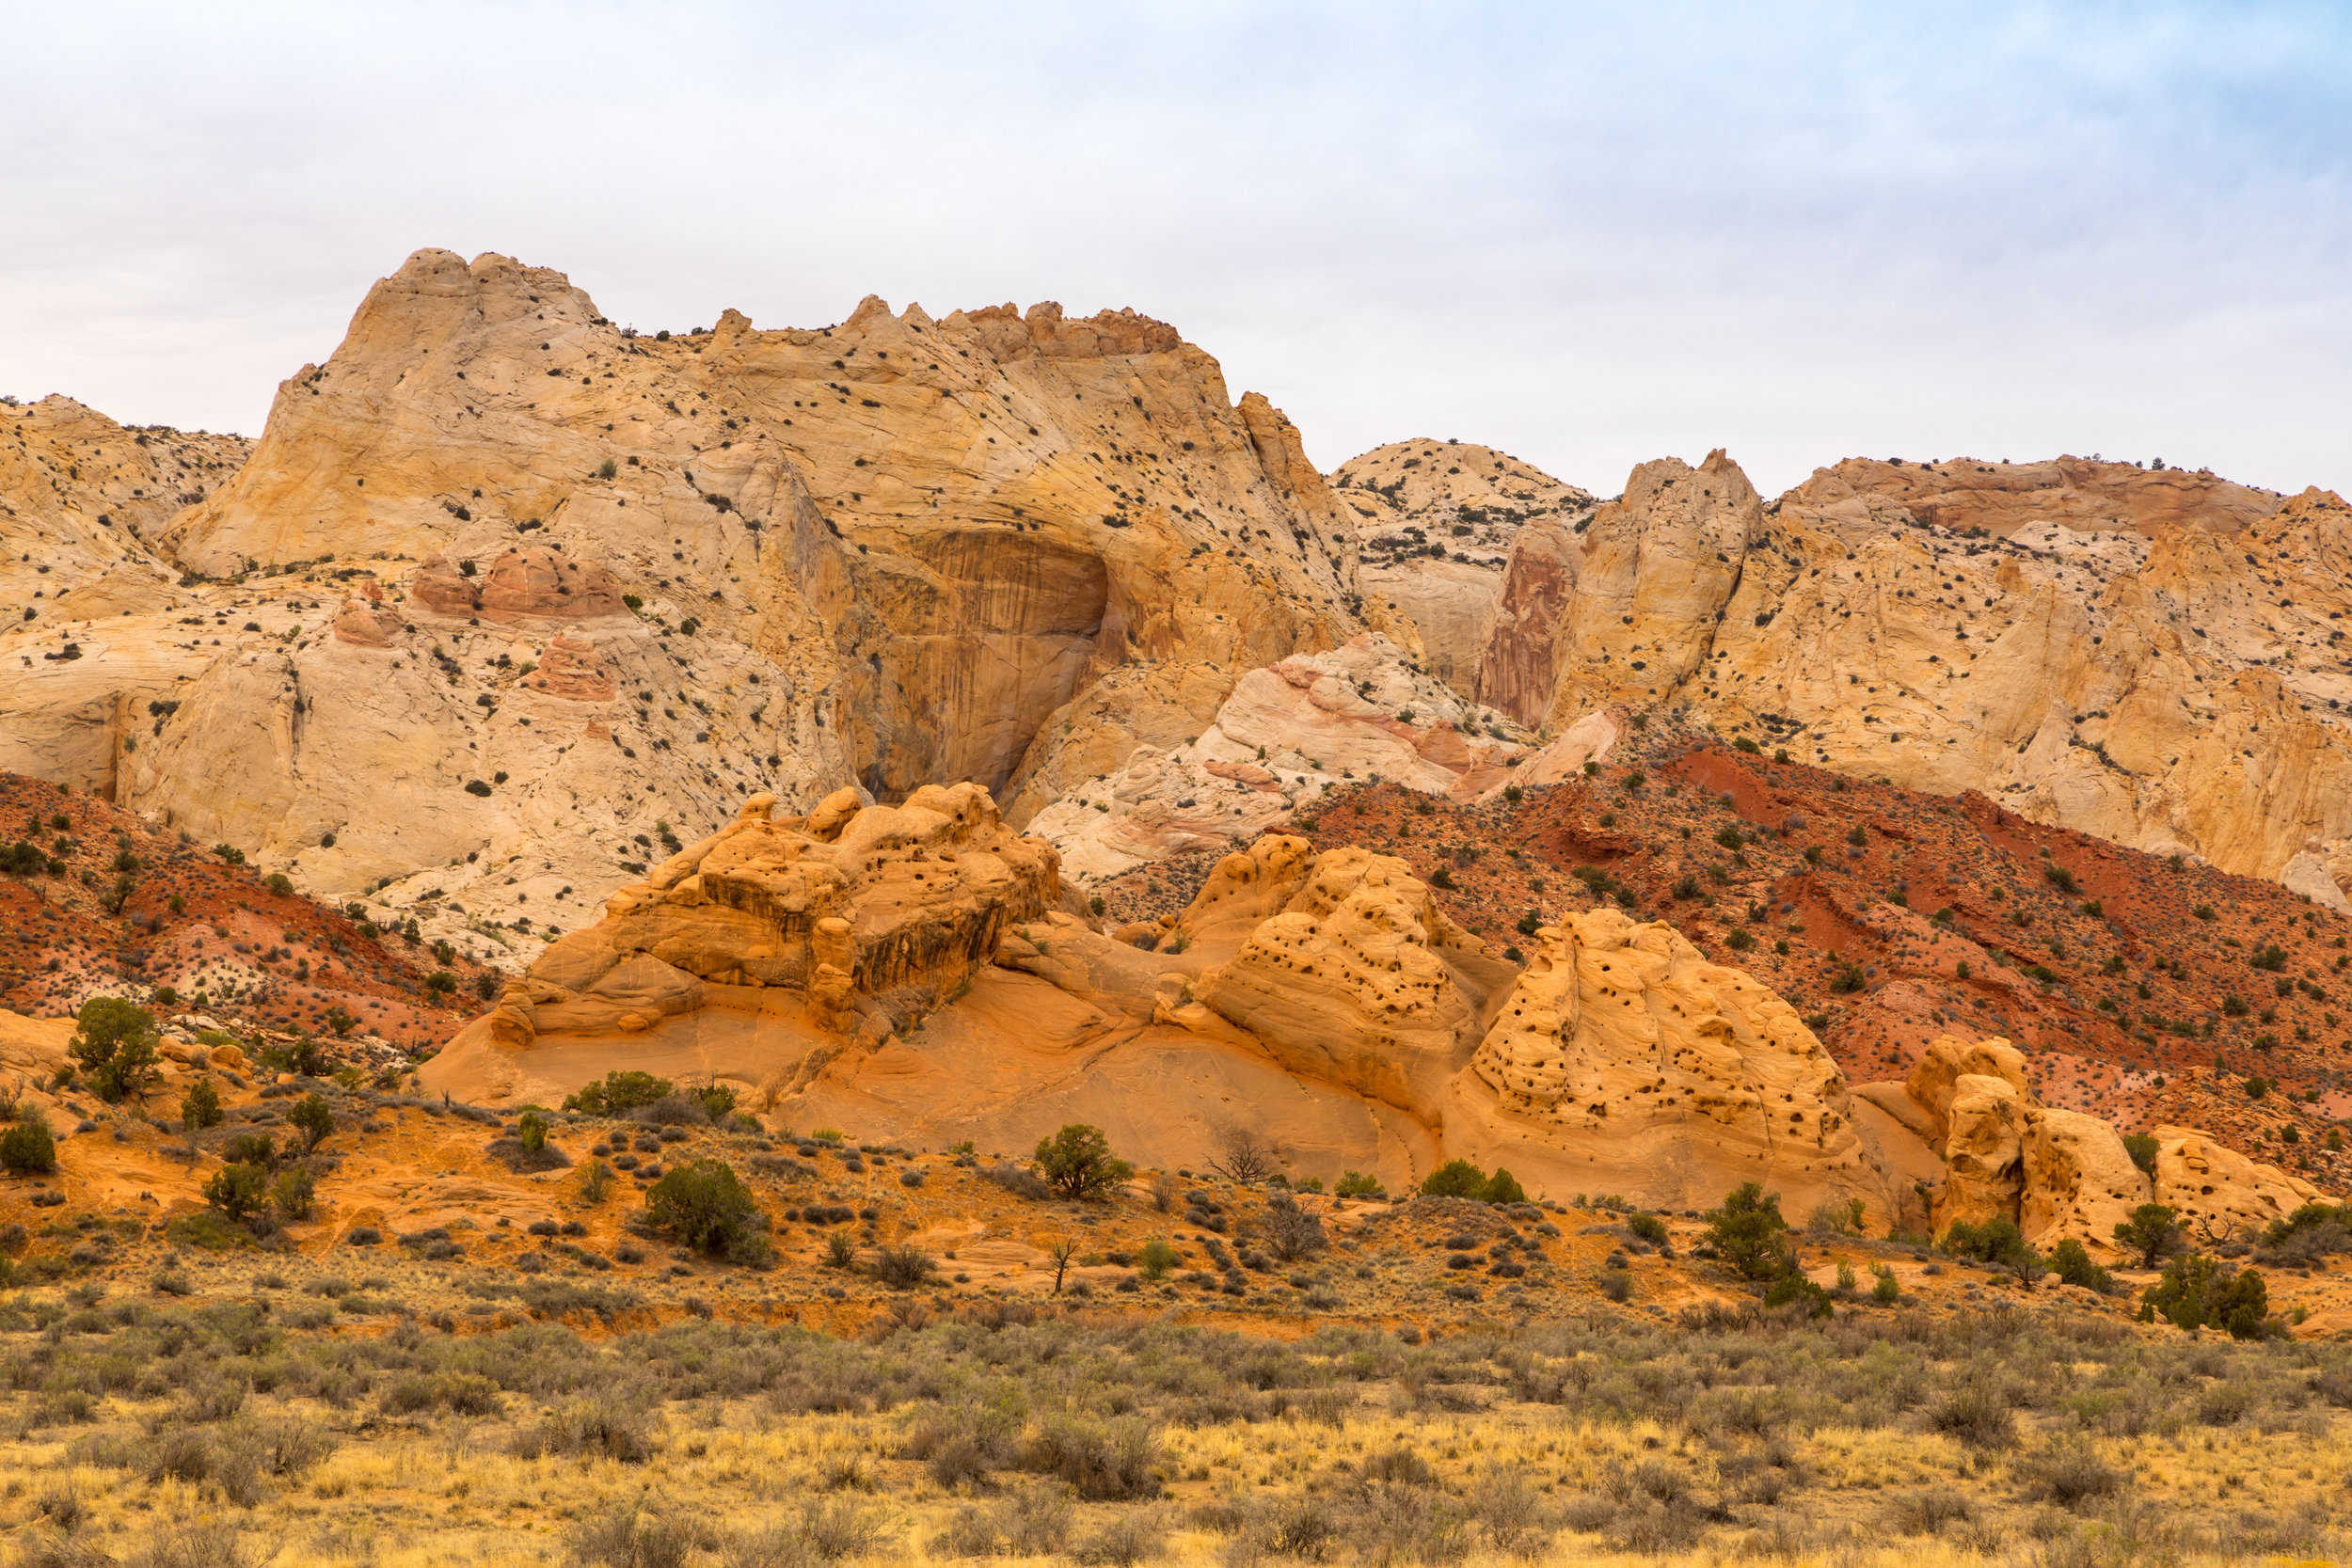 Capitol Reef National Park, Image # 4739